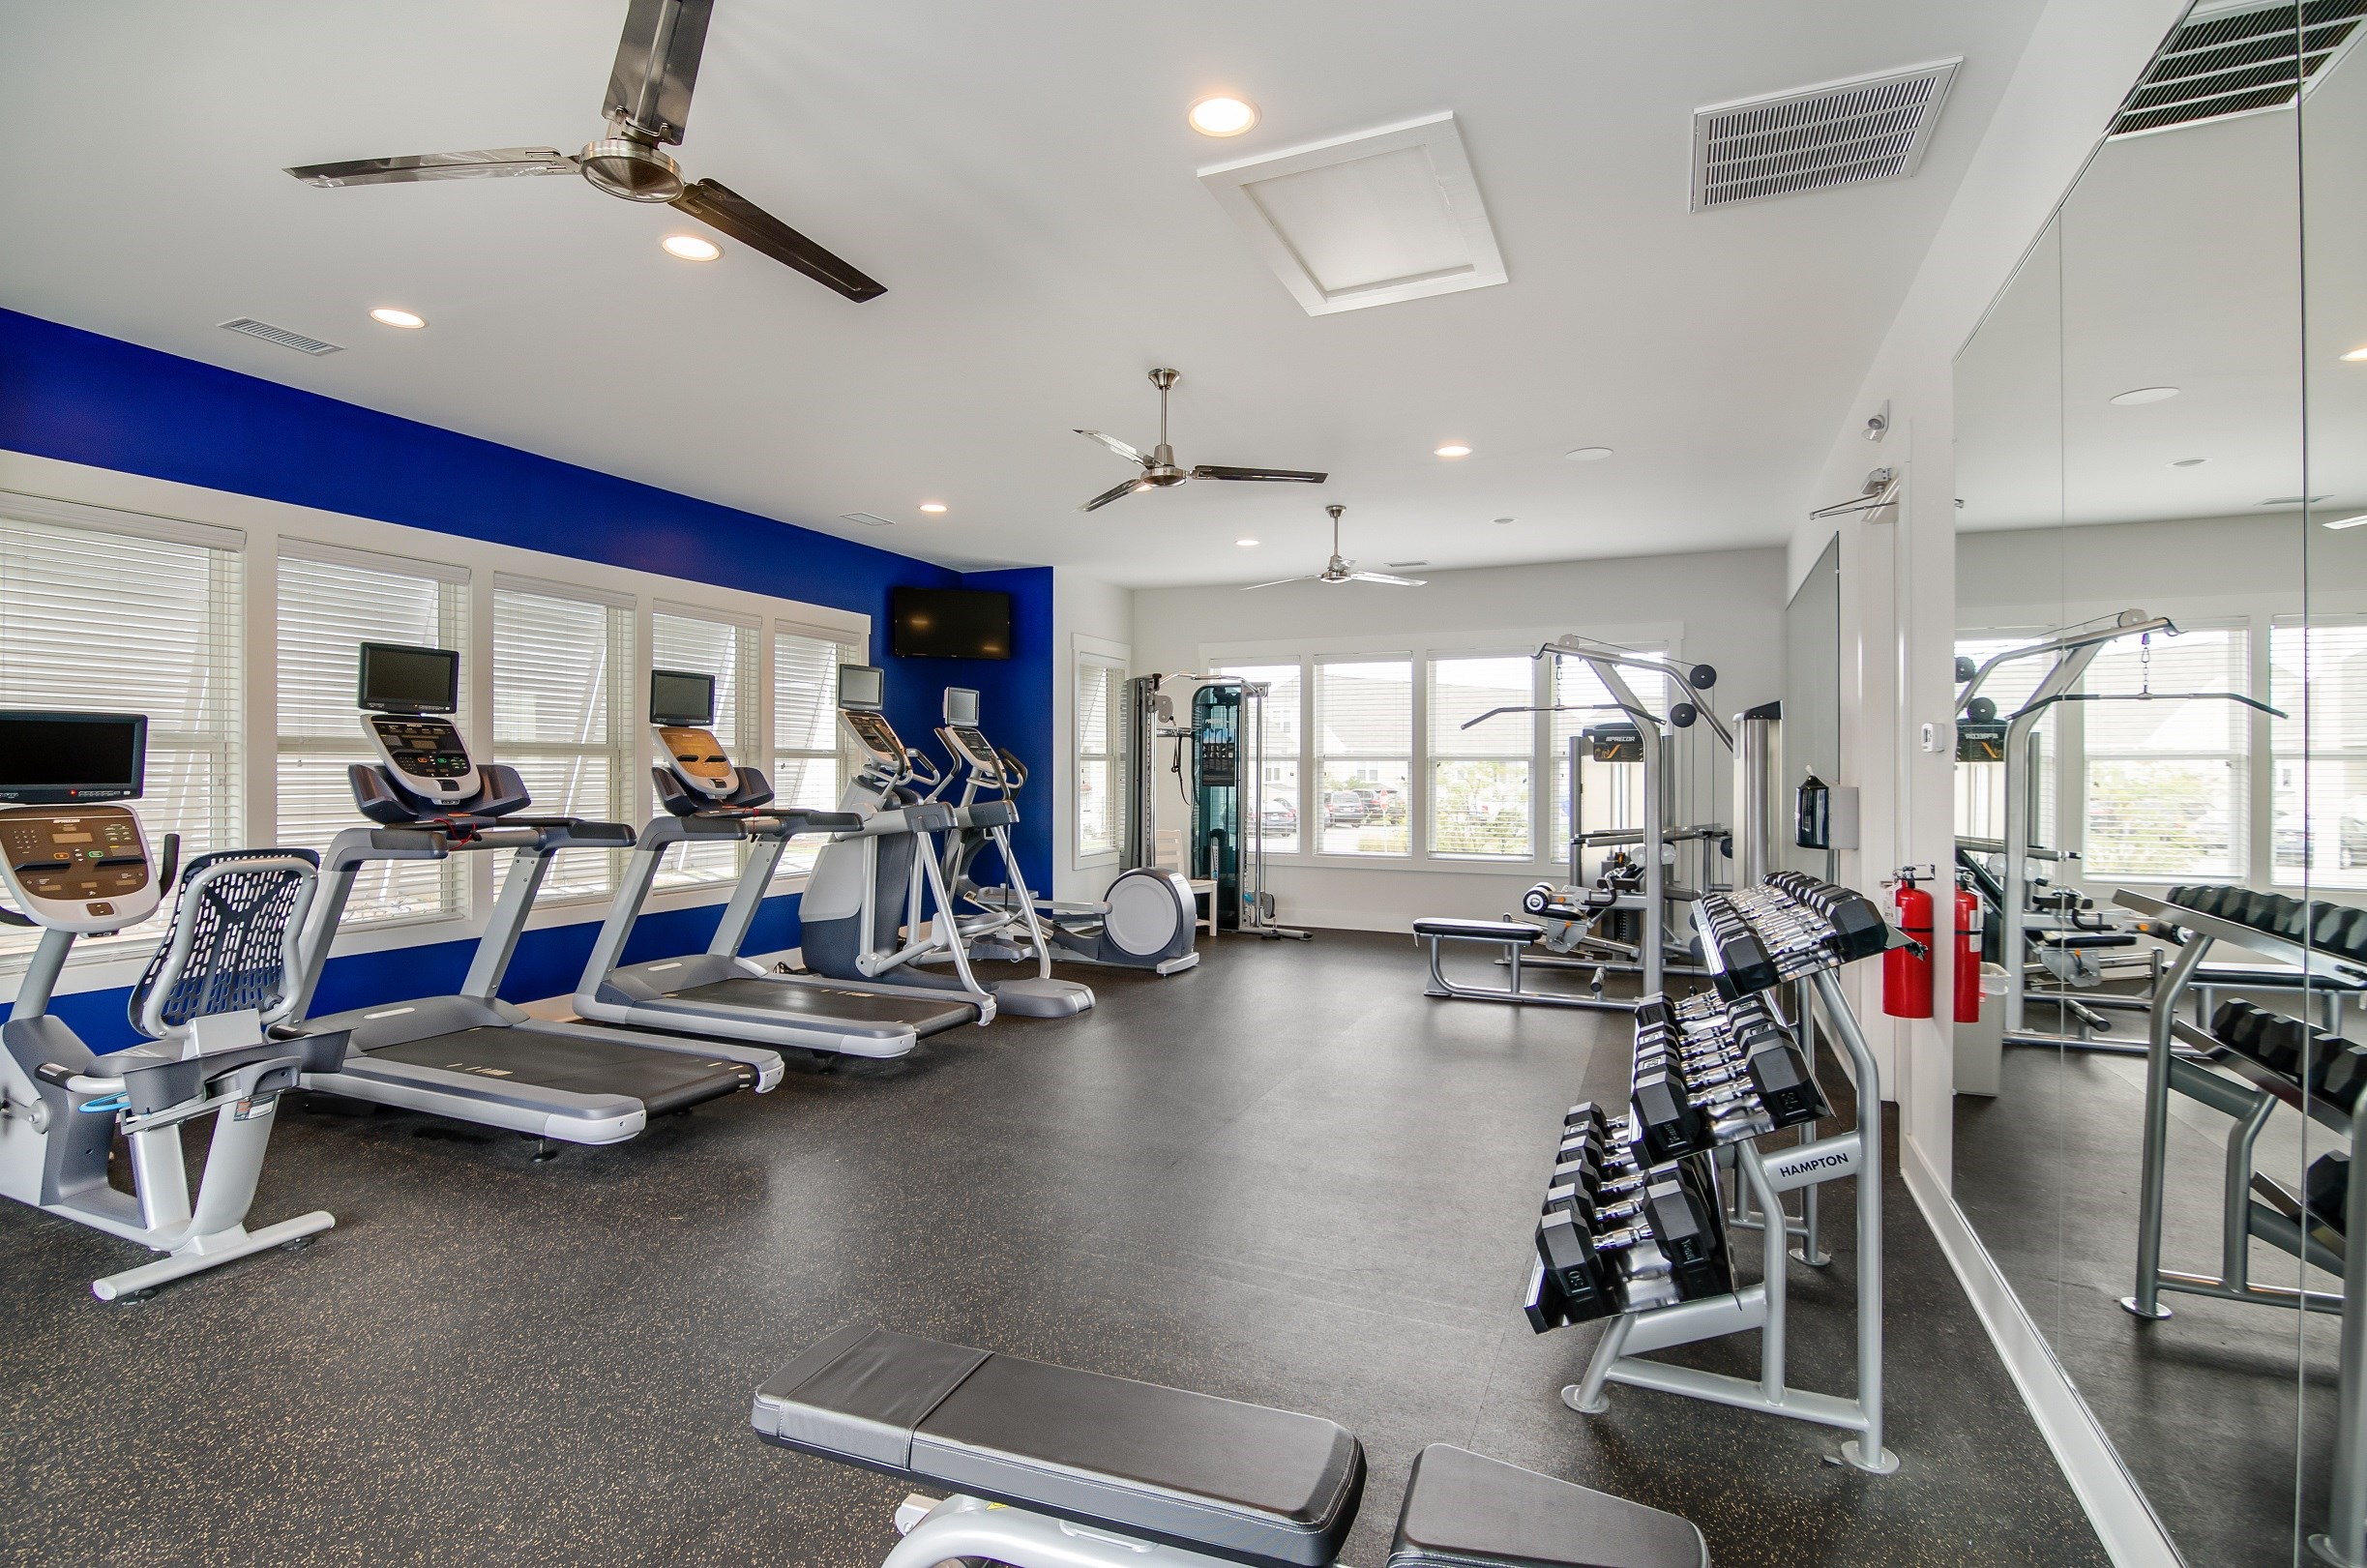 Wilmington, NC Apartments - Myrtle Landing 24-Hour Fitness Center with Ceiling Fans, Cardio Machines, and Free Weights